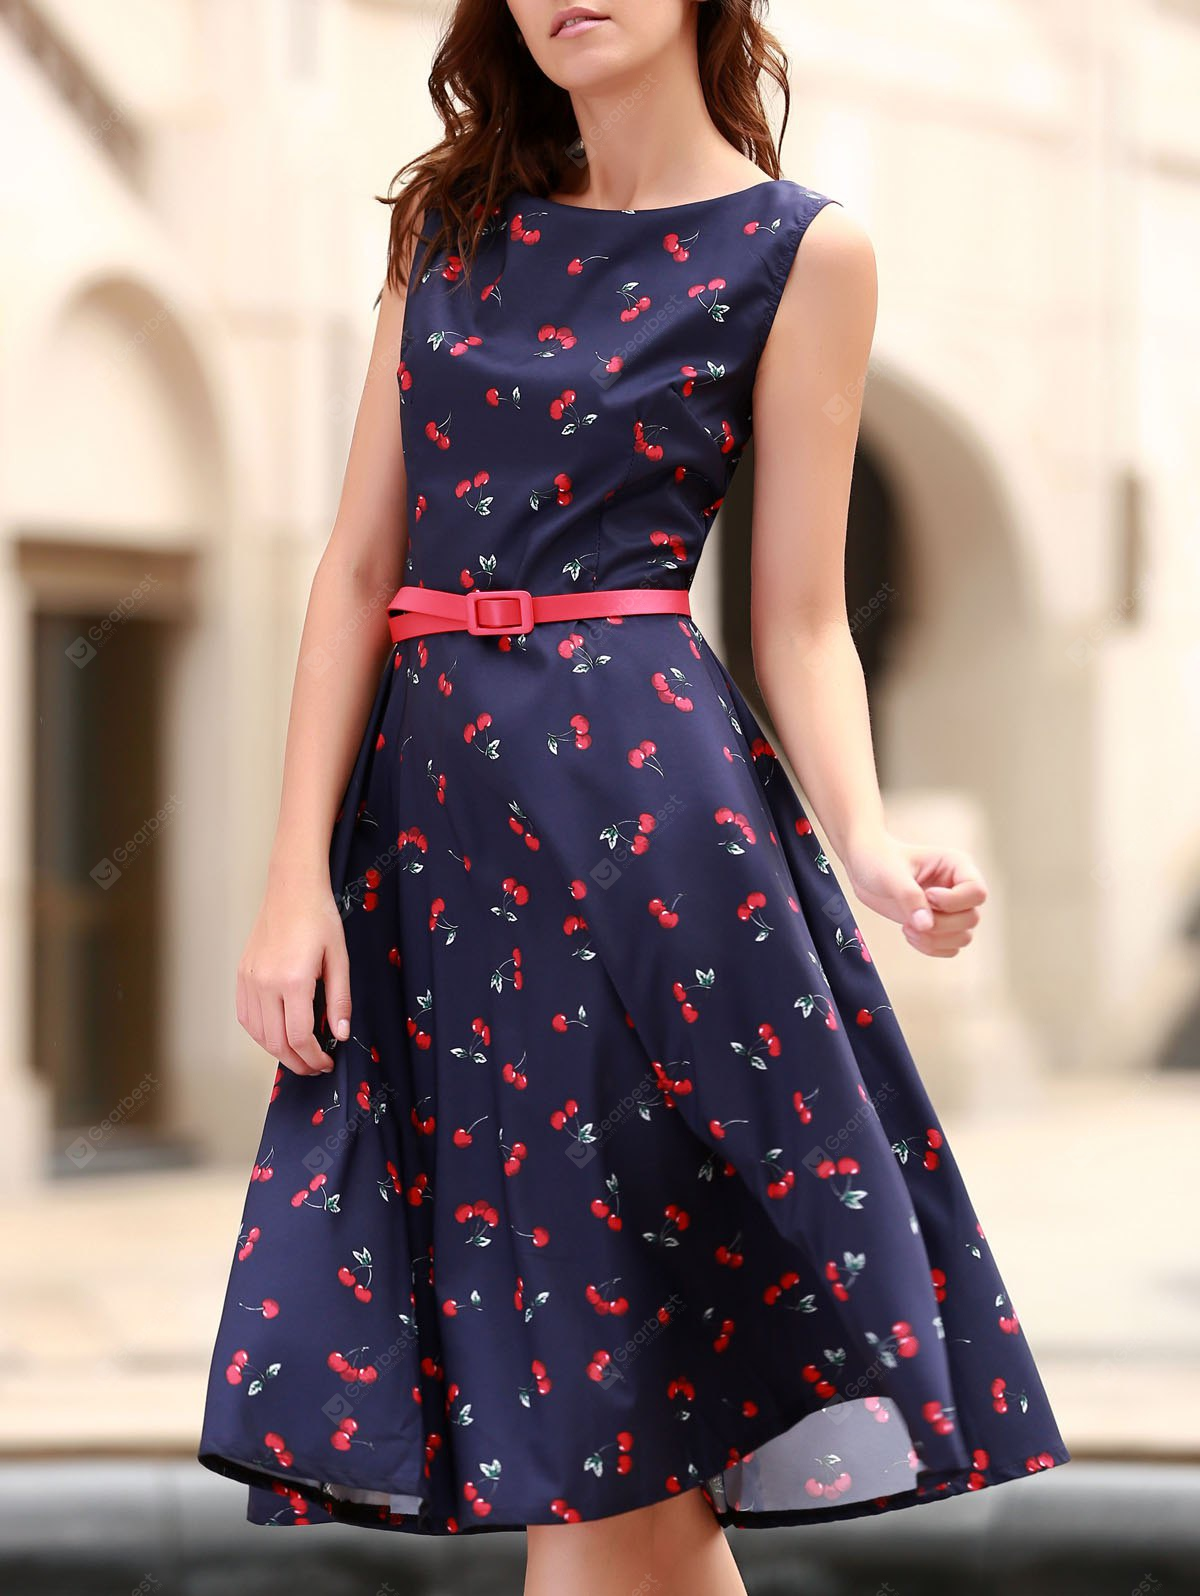 Vintage Jewel collo maniche Cherry Dress Stampa Flare per le donne